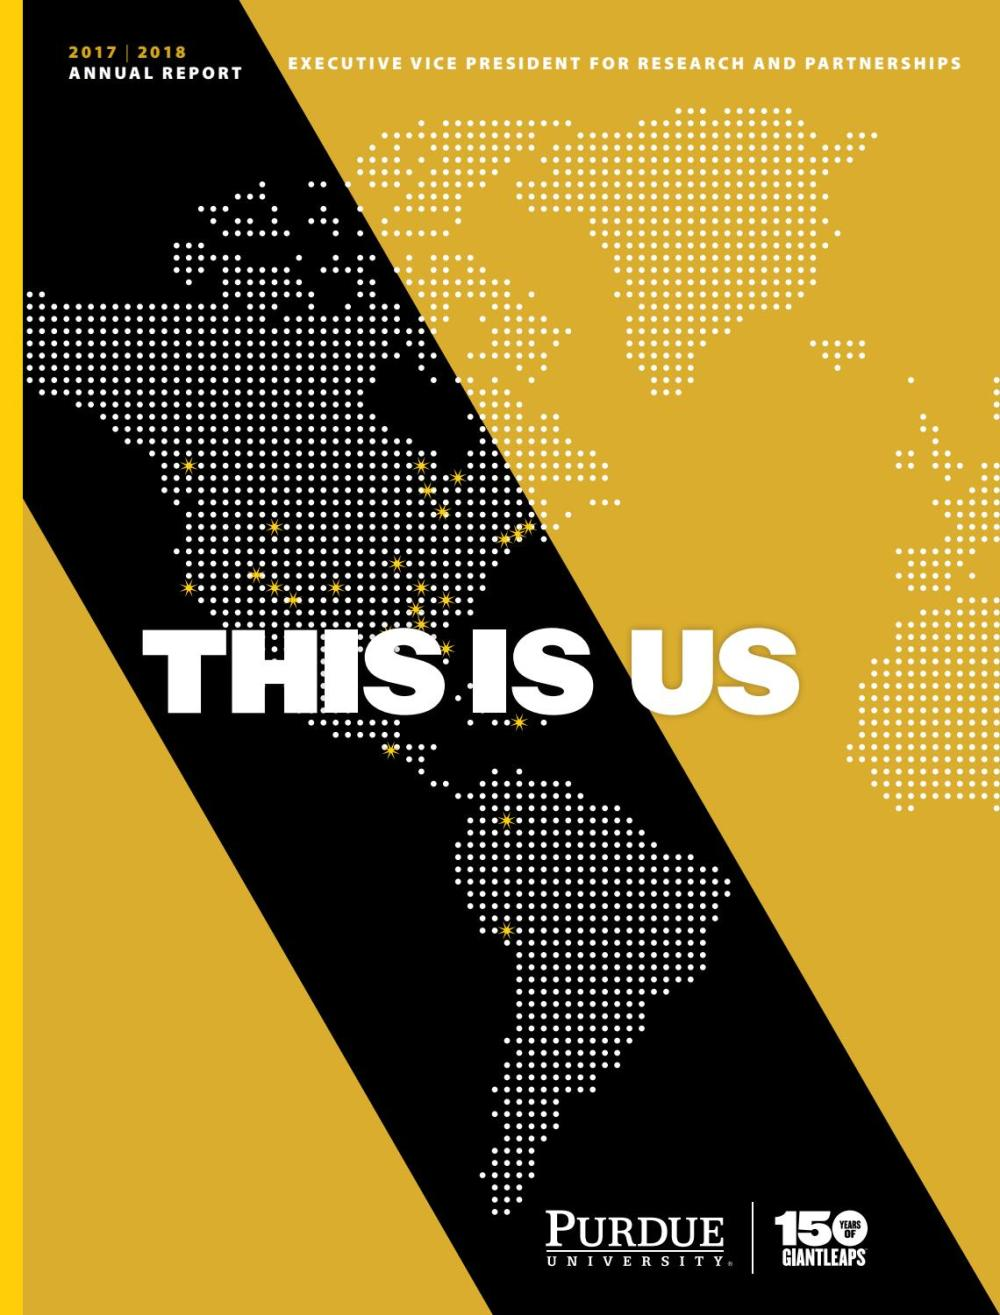 medium resolution of this is us 2017 2018 evprp annual report by purdue university office of the executive vice president for research and partnerships issuu